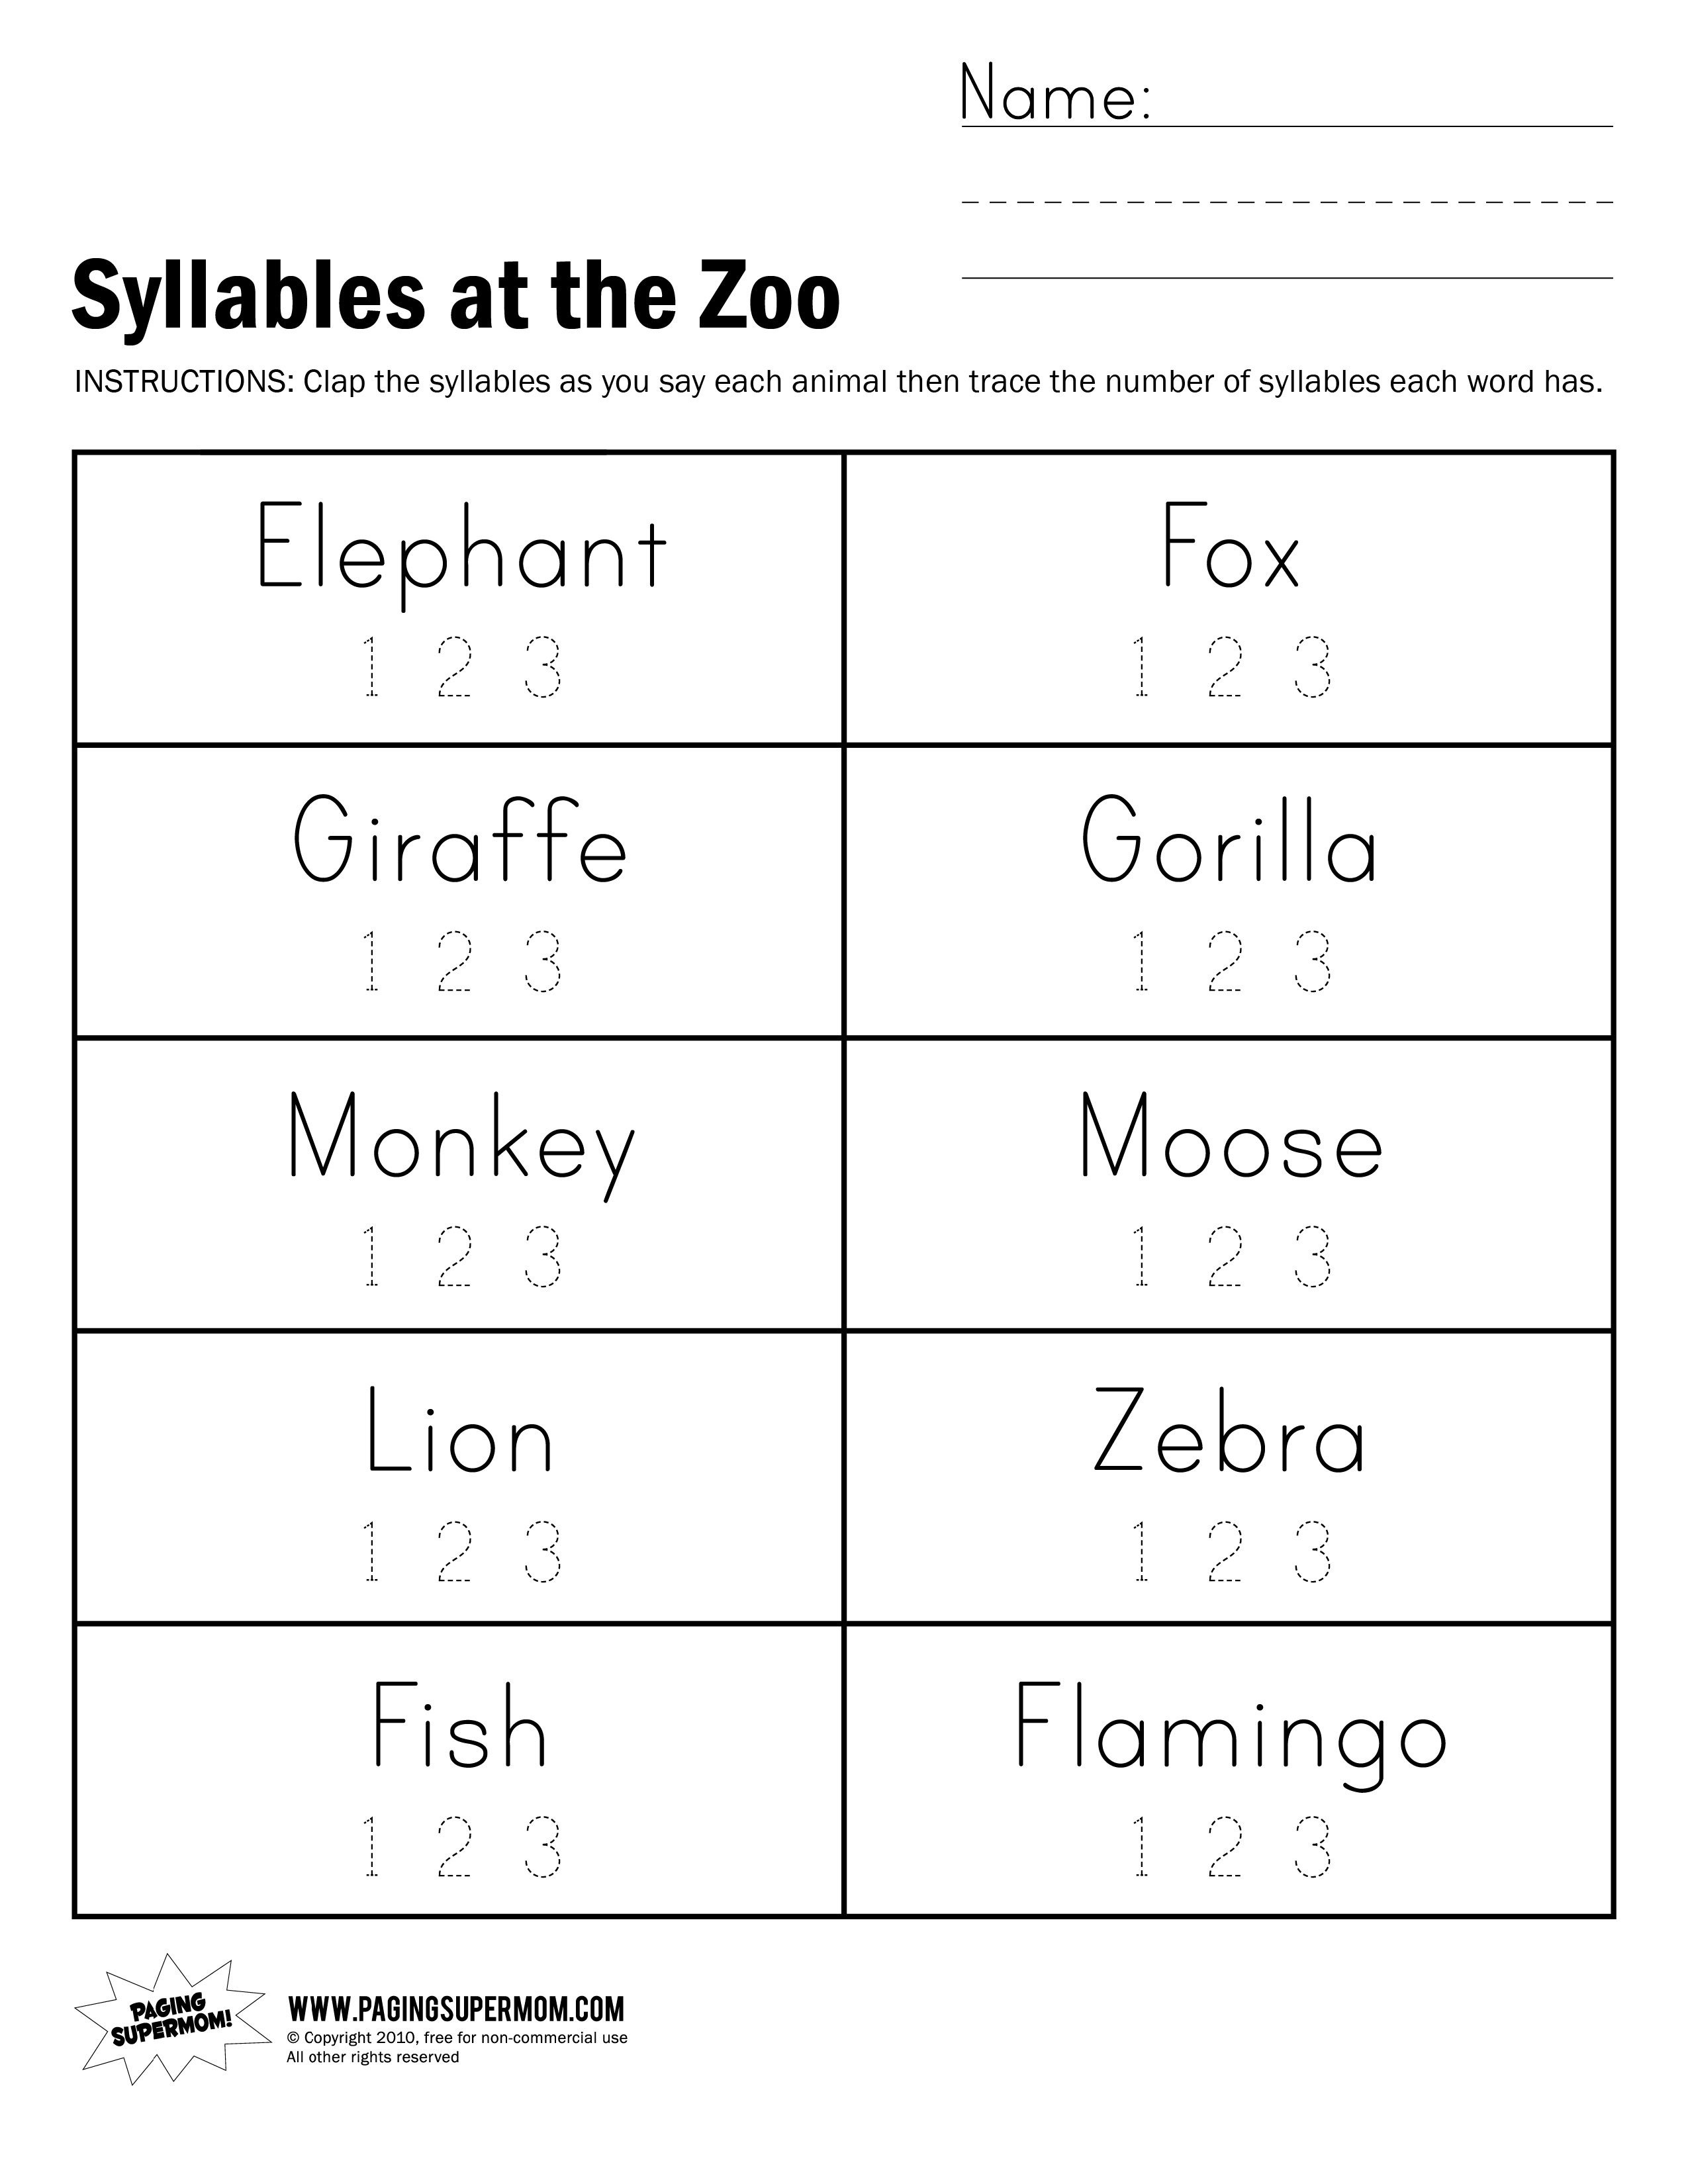 Syllables At The Zoo Worksheet   Paging Supermom   School Practice - Free Printable Open And Closed Syllable Worksheets